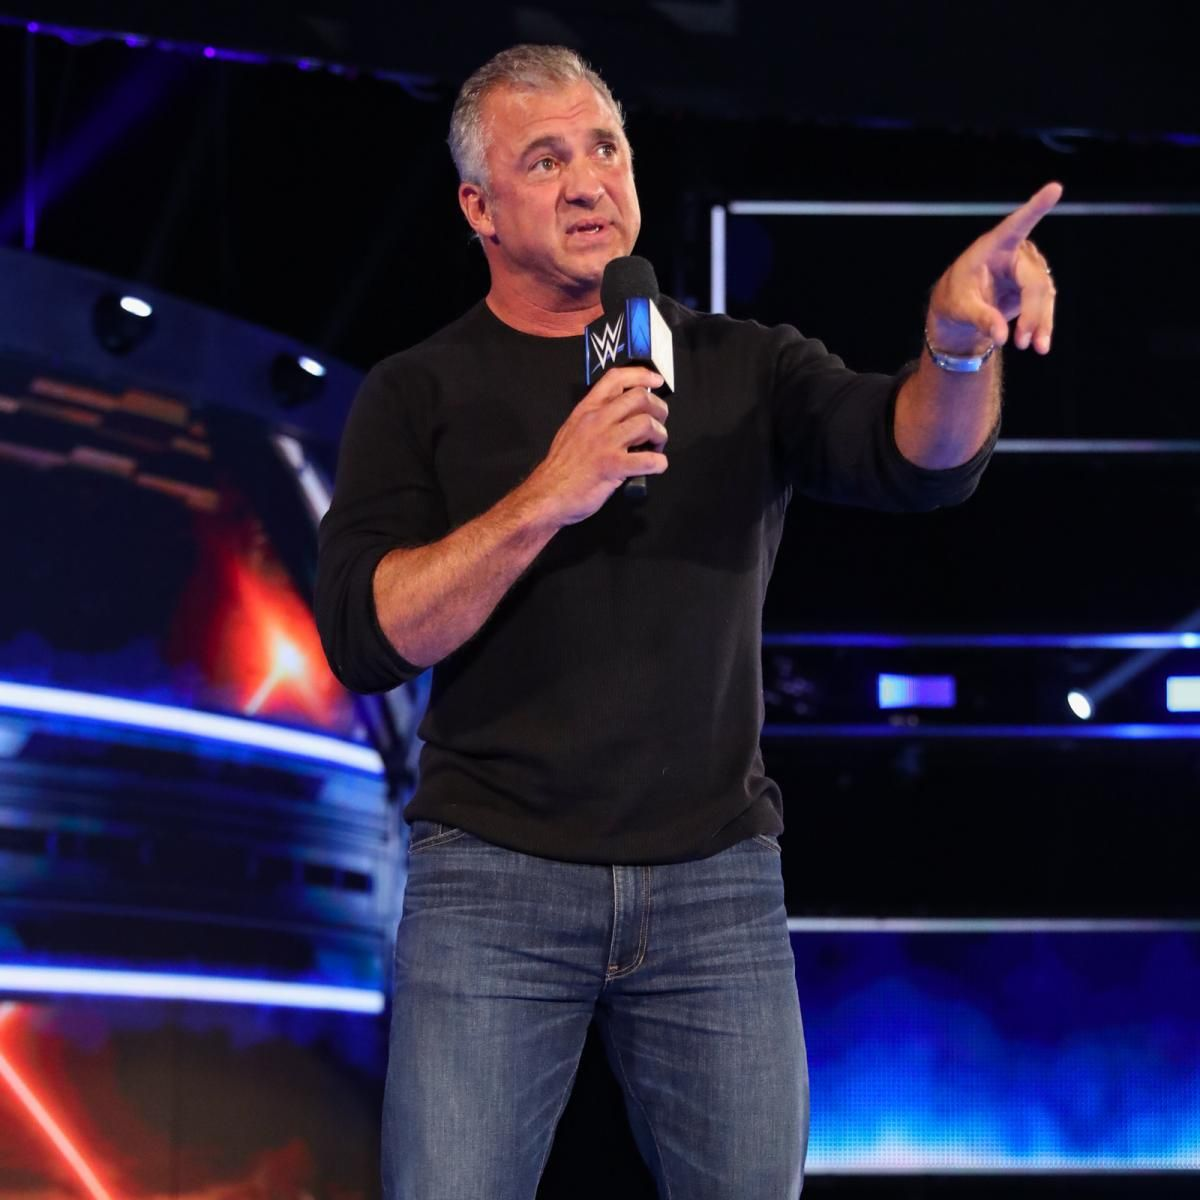 WWE SmackDown Live results: 4 things we learned as Shane McMahon vs Kevin Owens is far from over